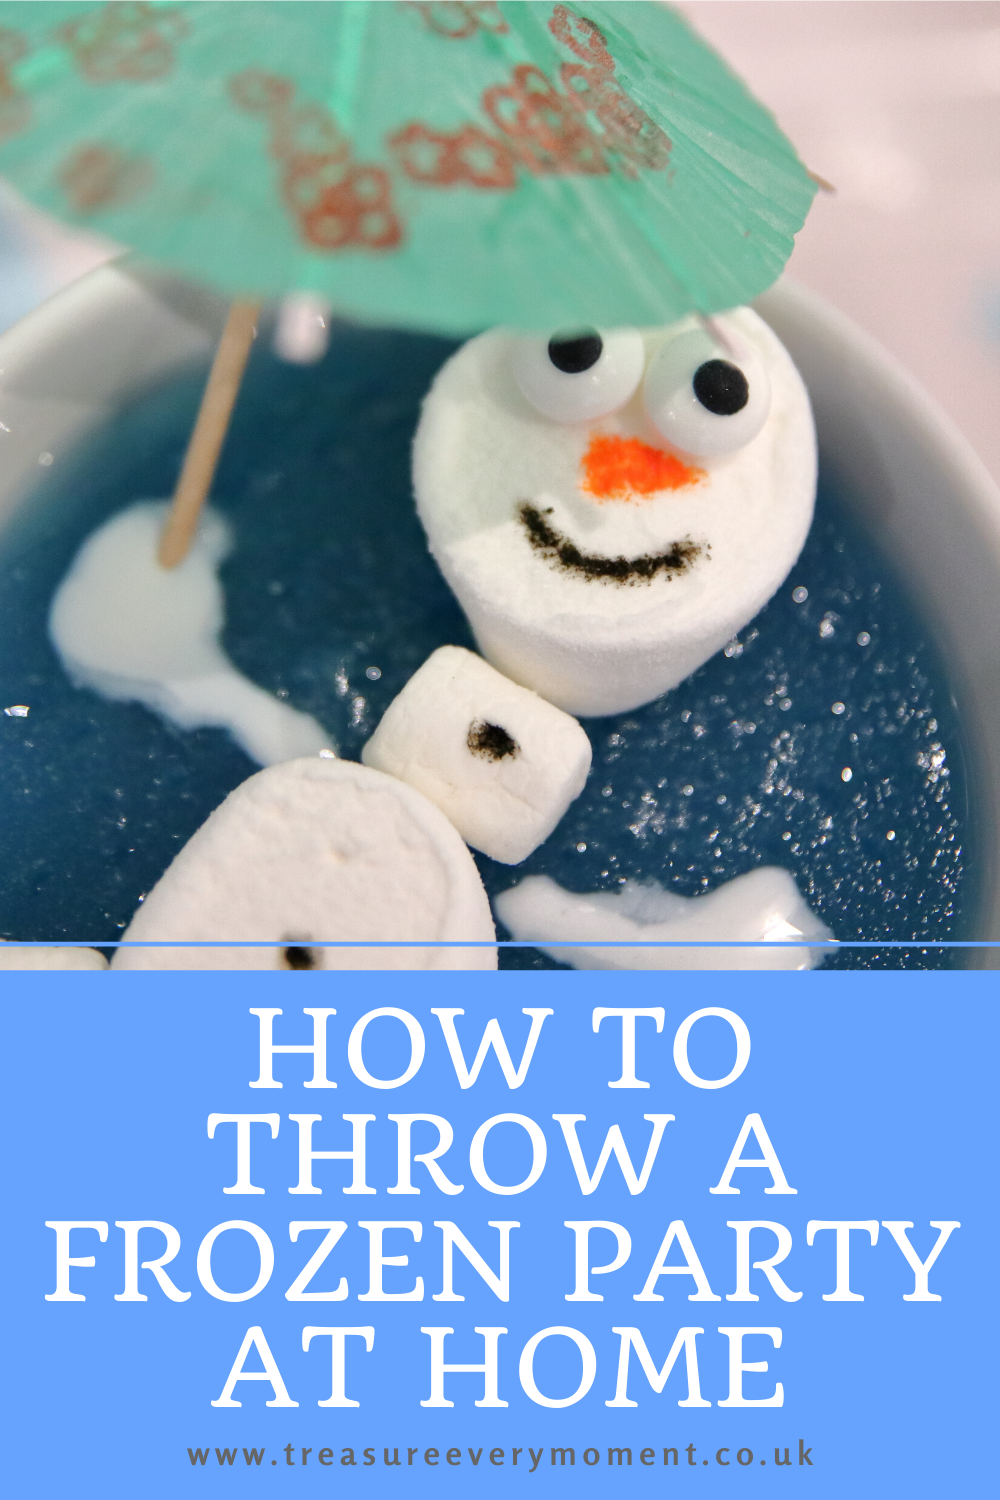 How to Throw a Frozen Lockdown Party at Home